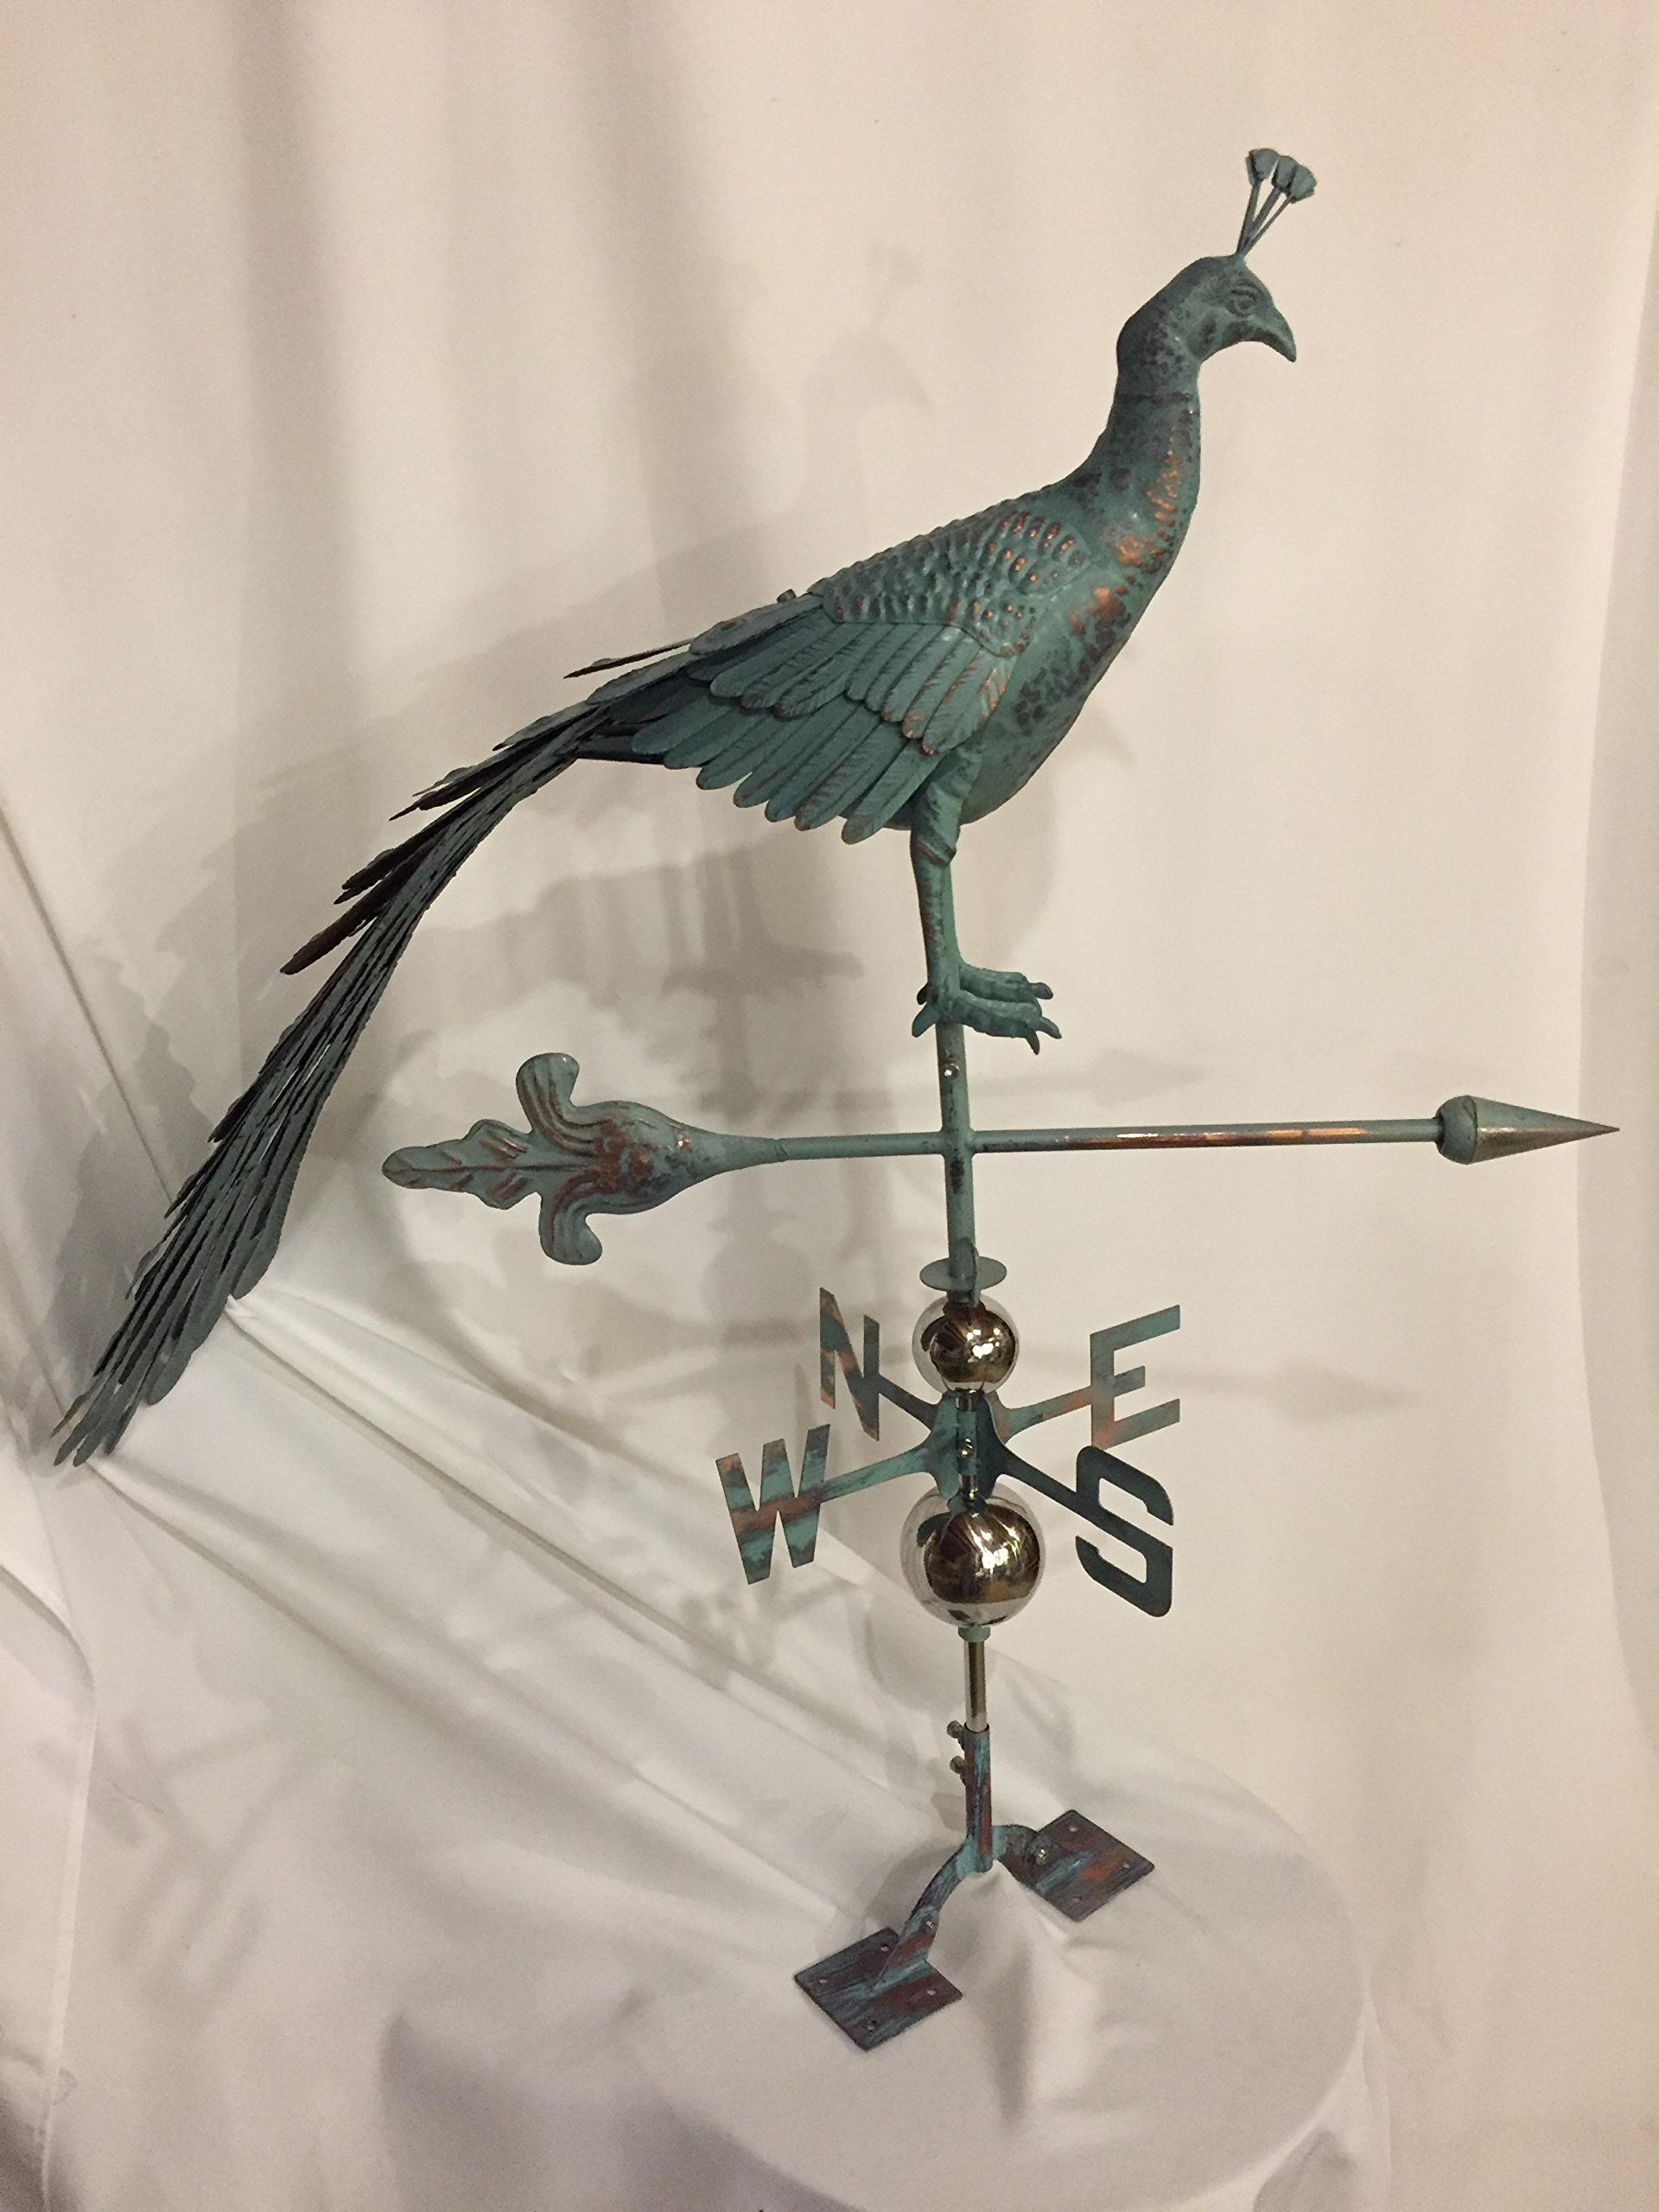 LARGE Handcrafted 3D 3- Dimensional Peacock Weathervane Copper Patina Finish